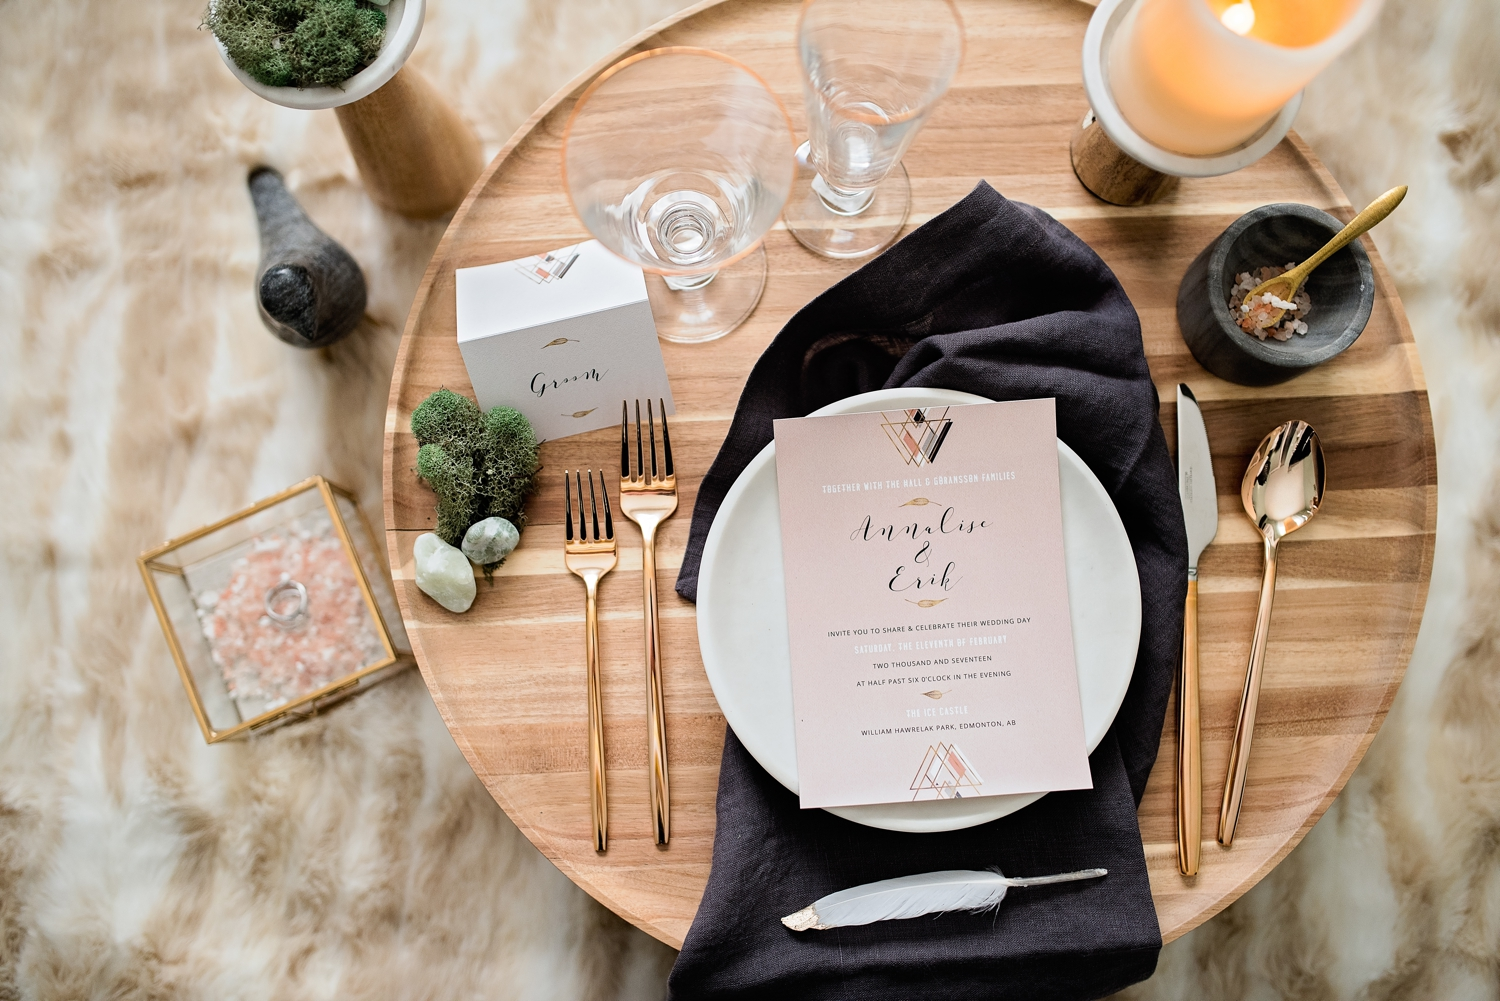 Nordic table setting for wedding reception